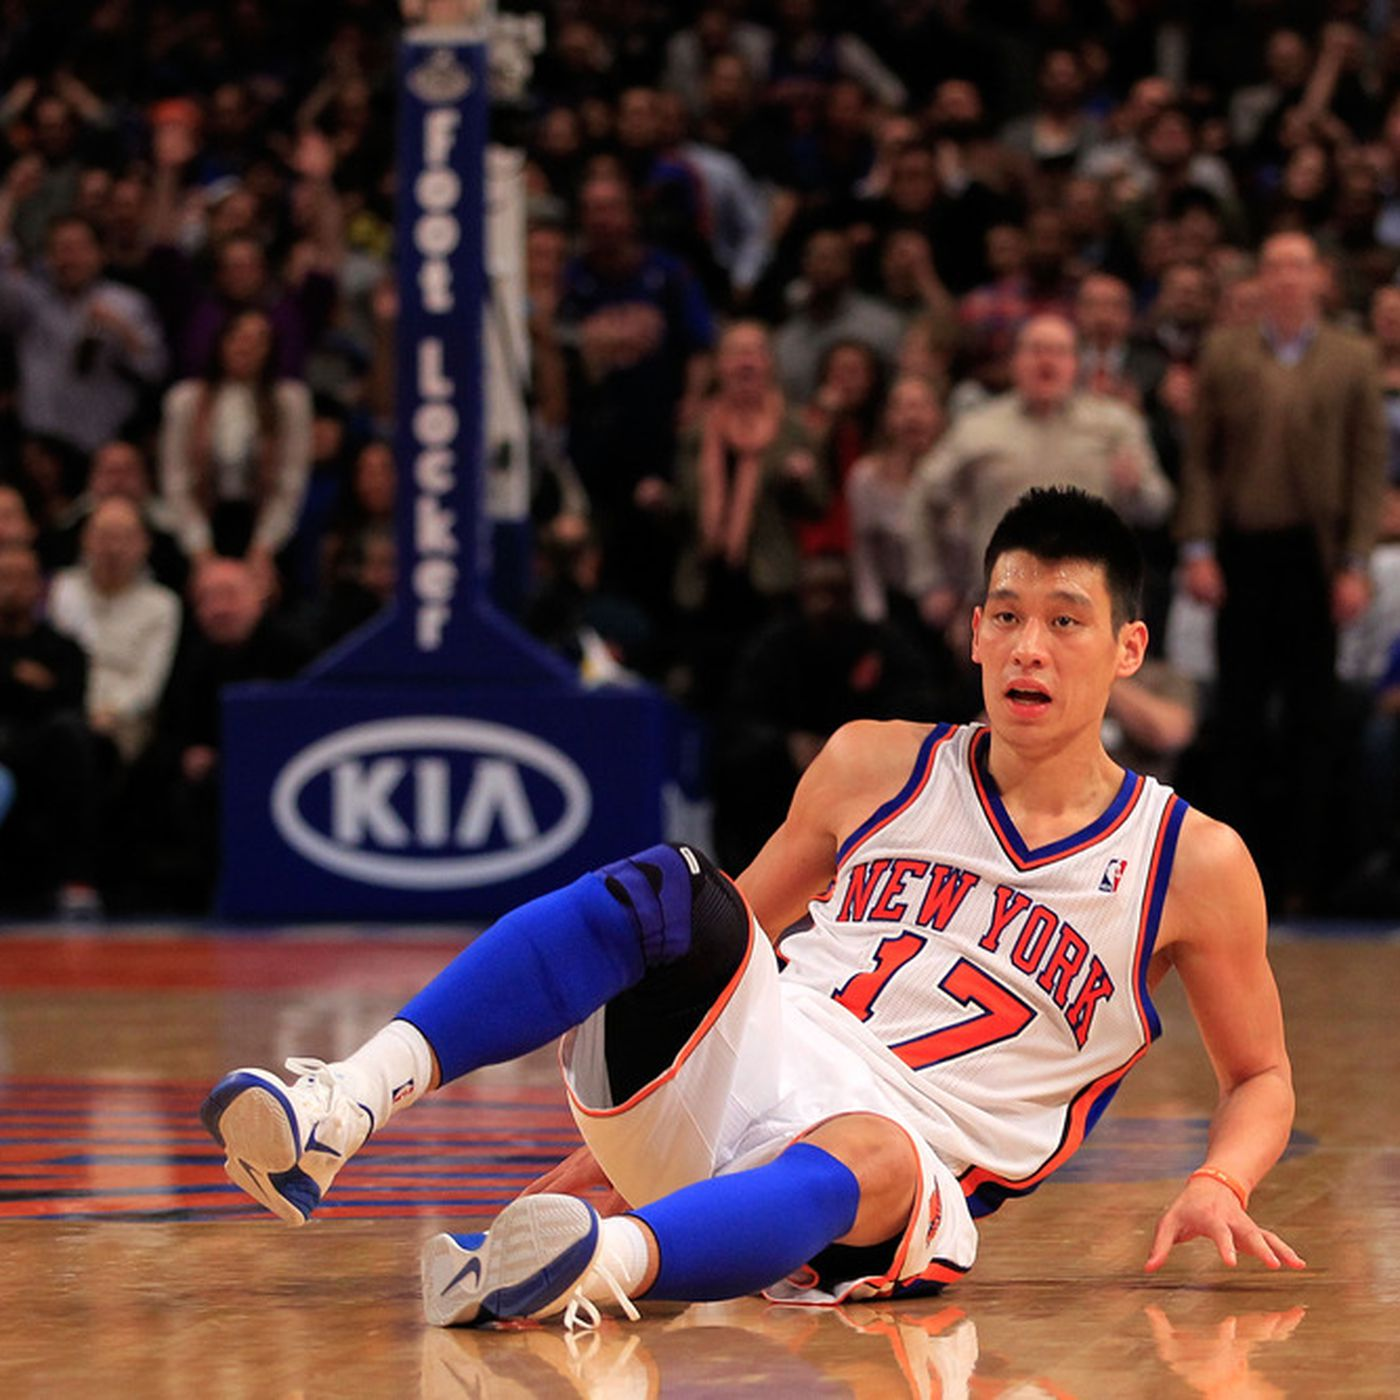 ESPN Fires Headline Writer, Suspends Anchor For Offensive Jeremy Lin